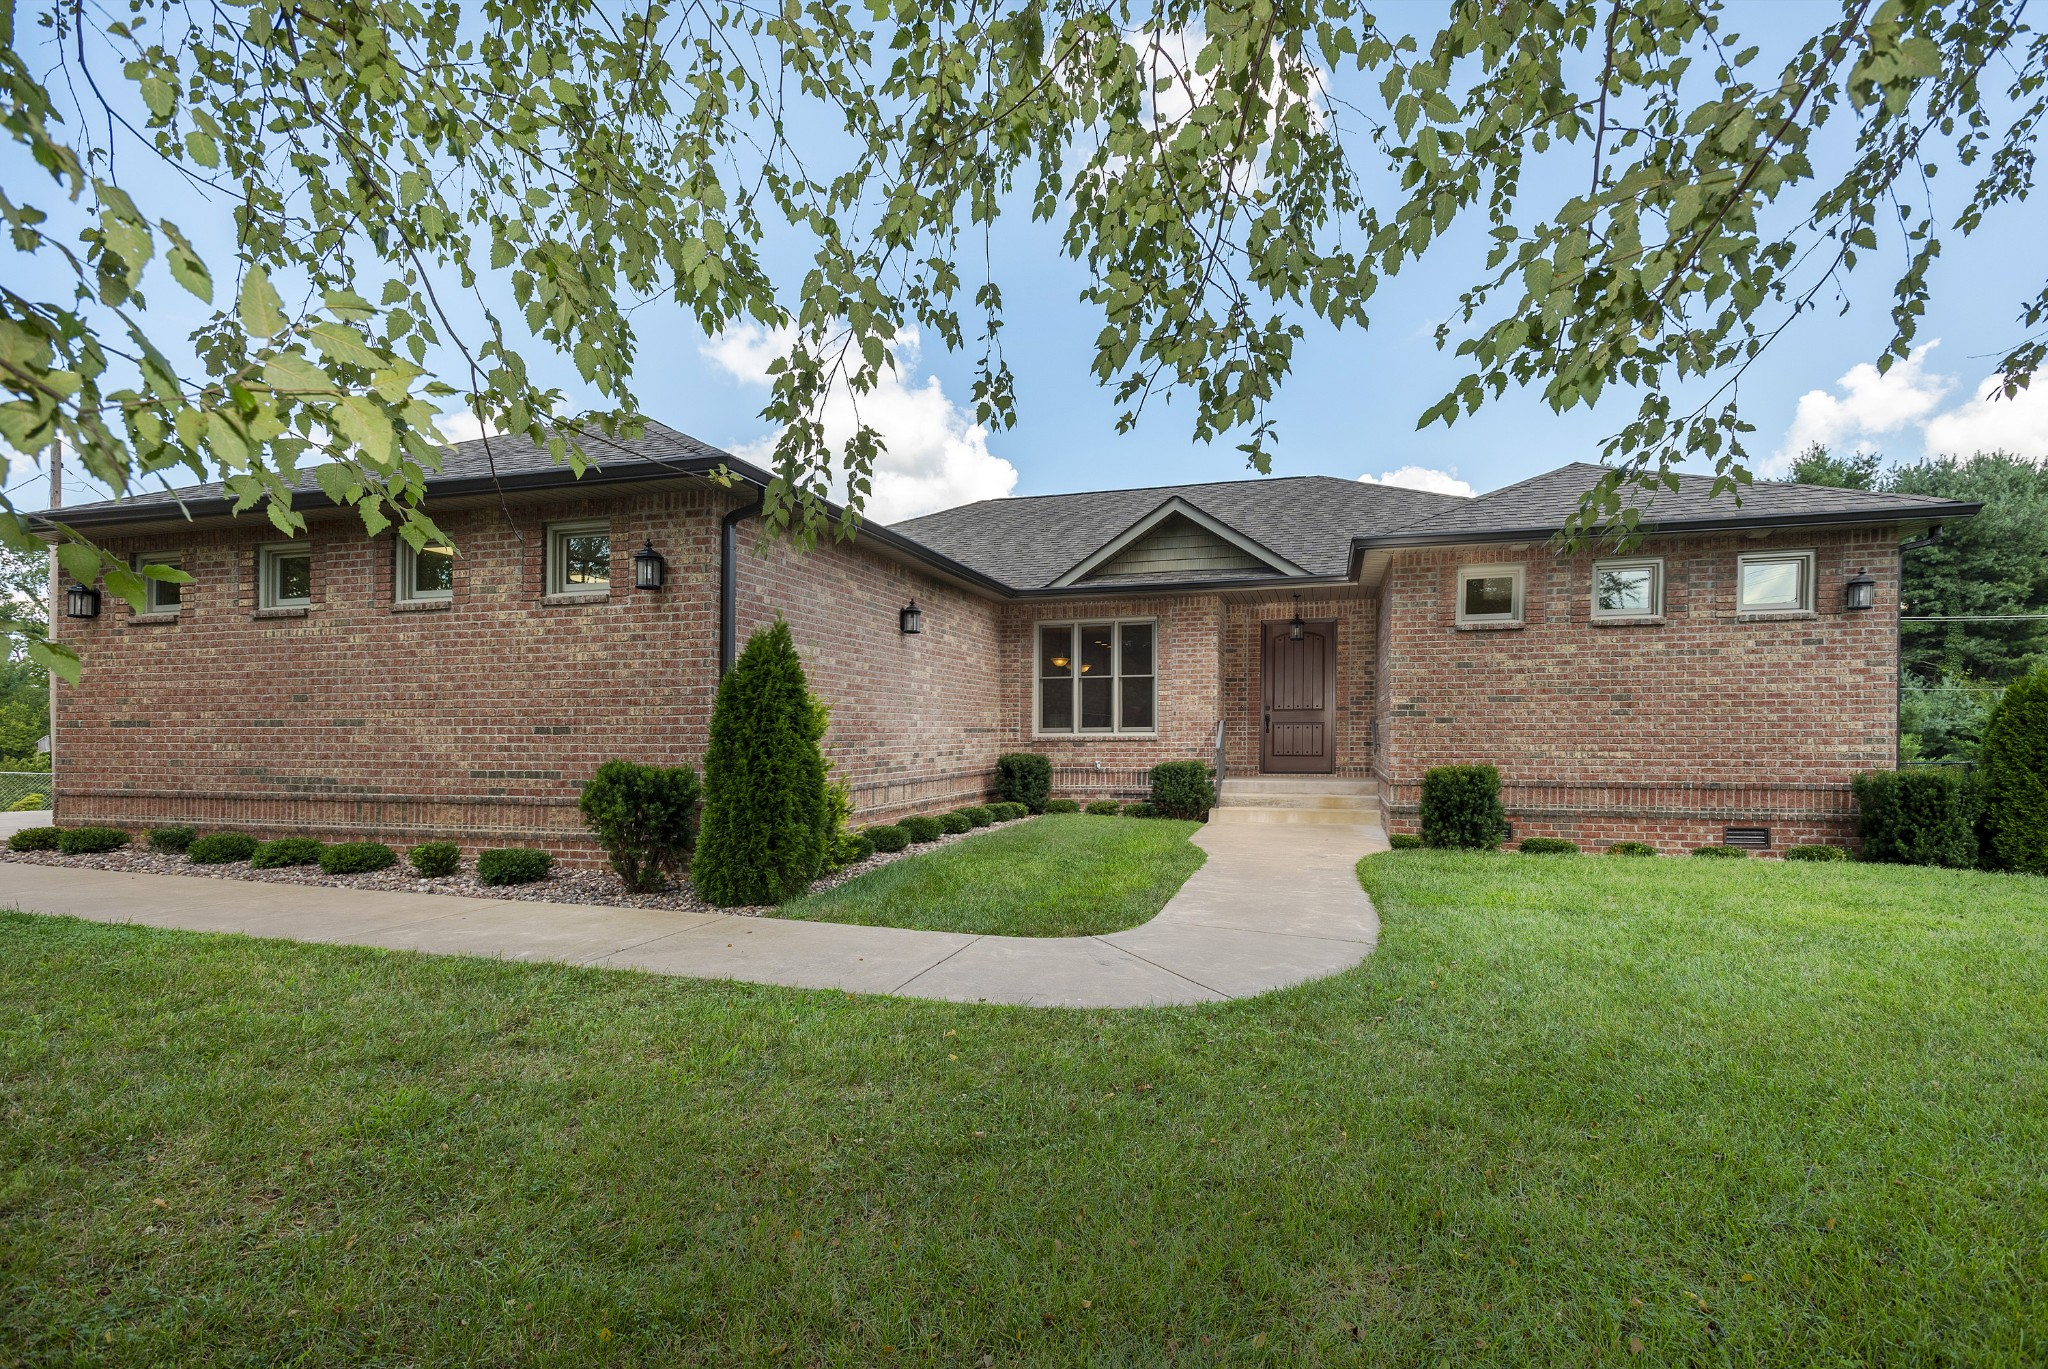 2137 Memorial Dr Property Photo - Clarksville, TN real estate listing